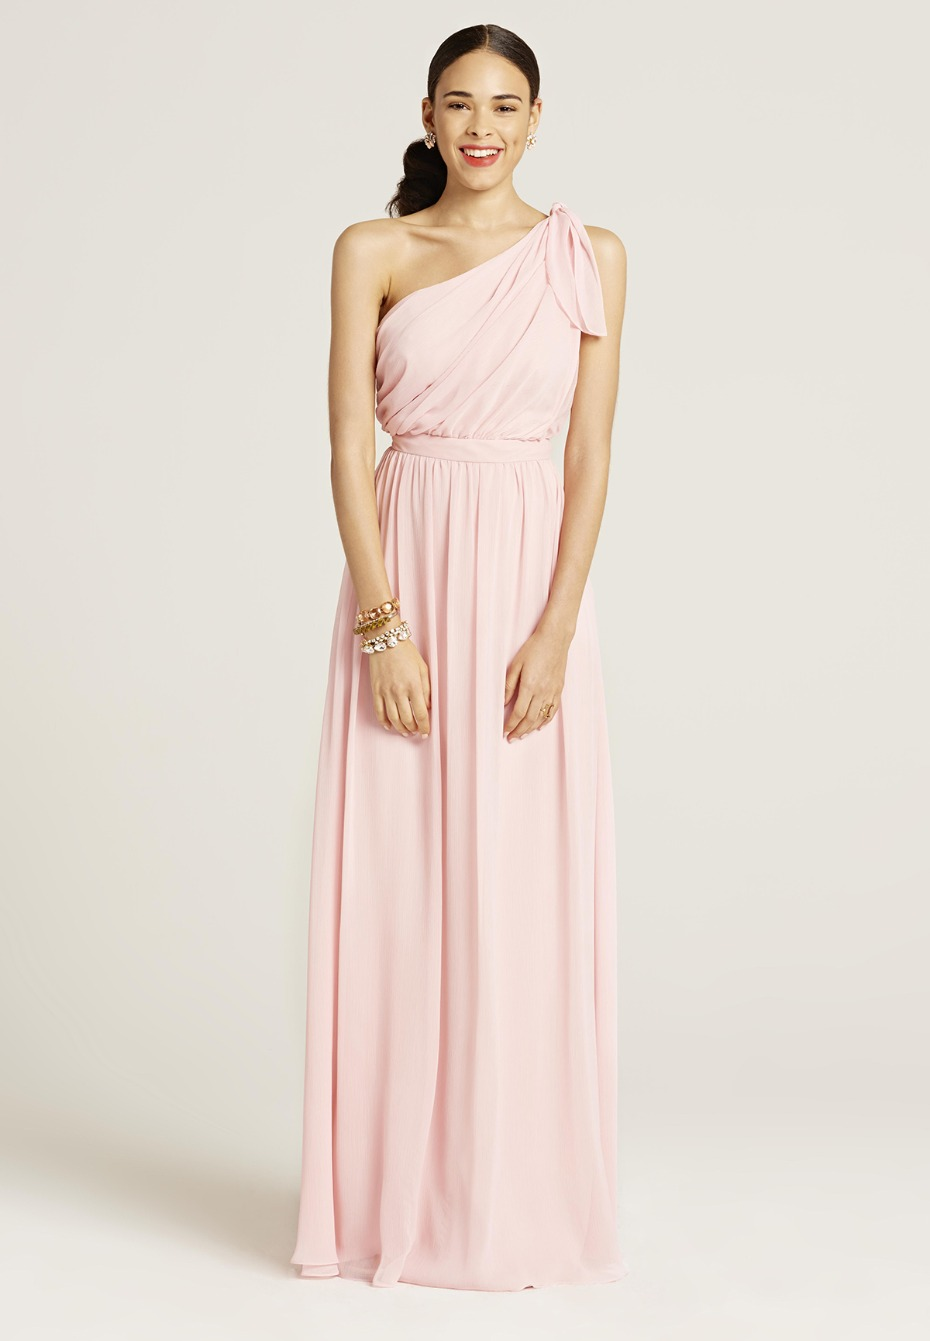 Blush bridesmaid dress from Union Station